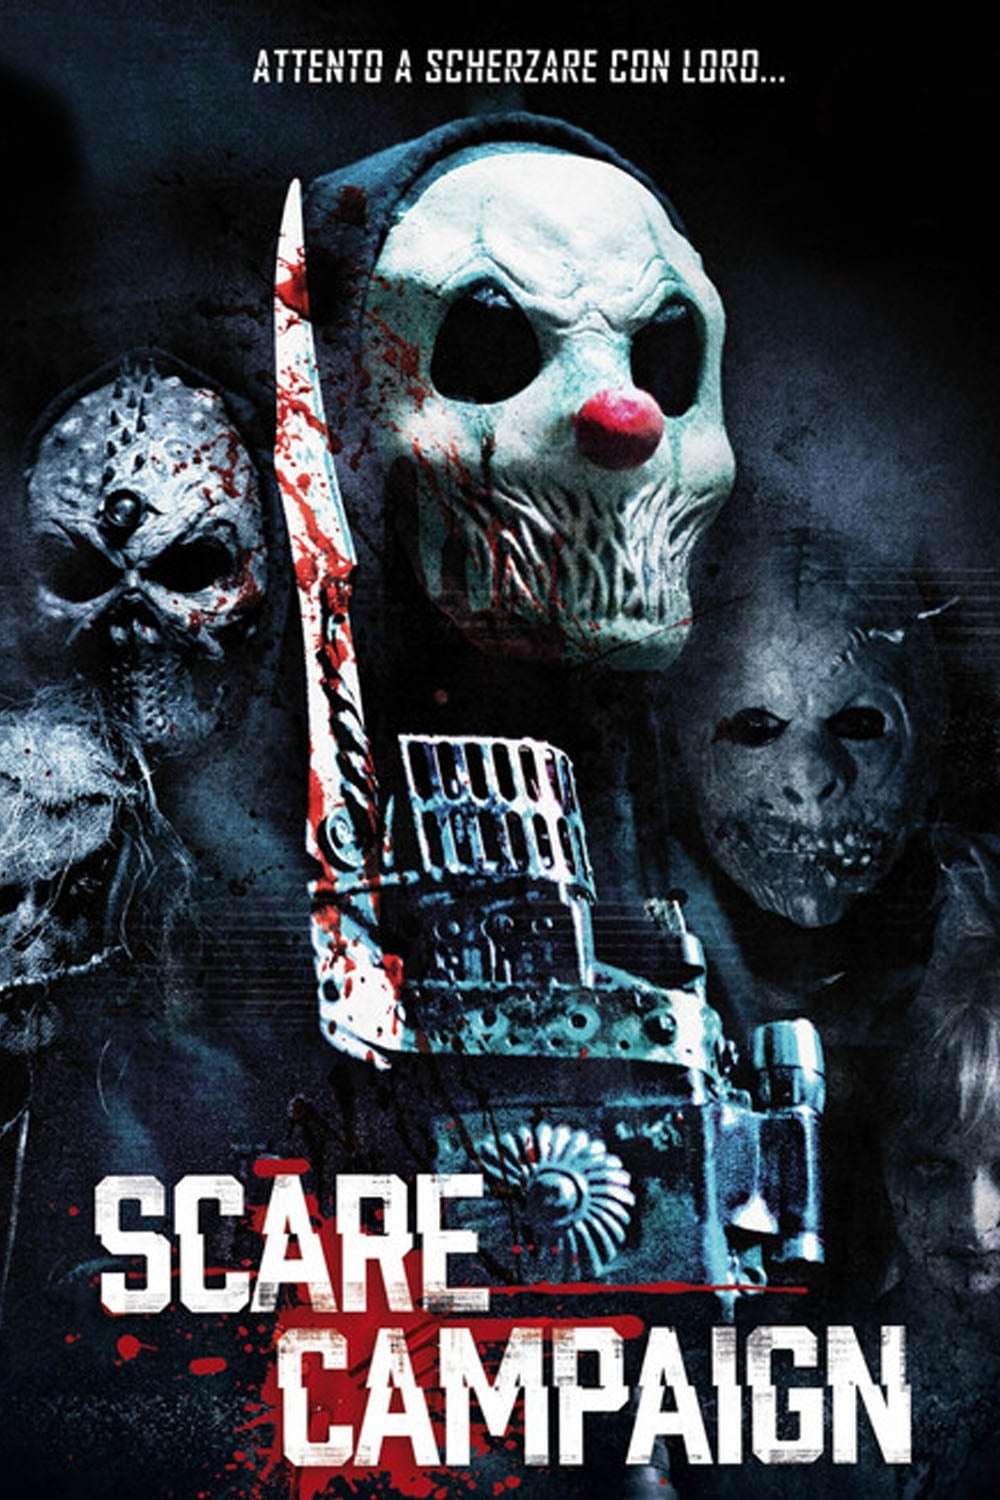 Scare Campaign 2016 Posters The Movie Database Tmdb